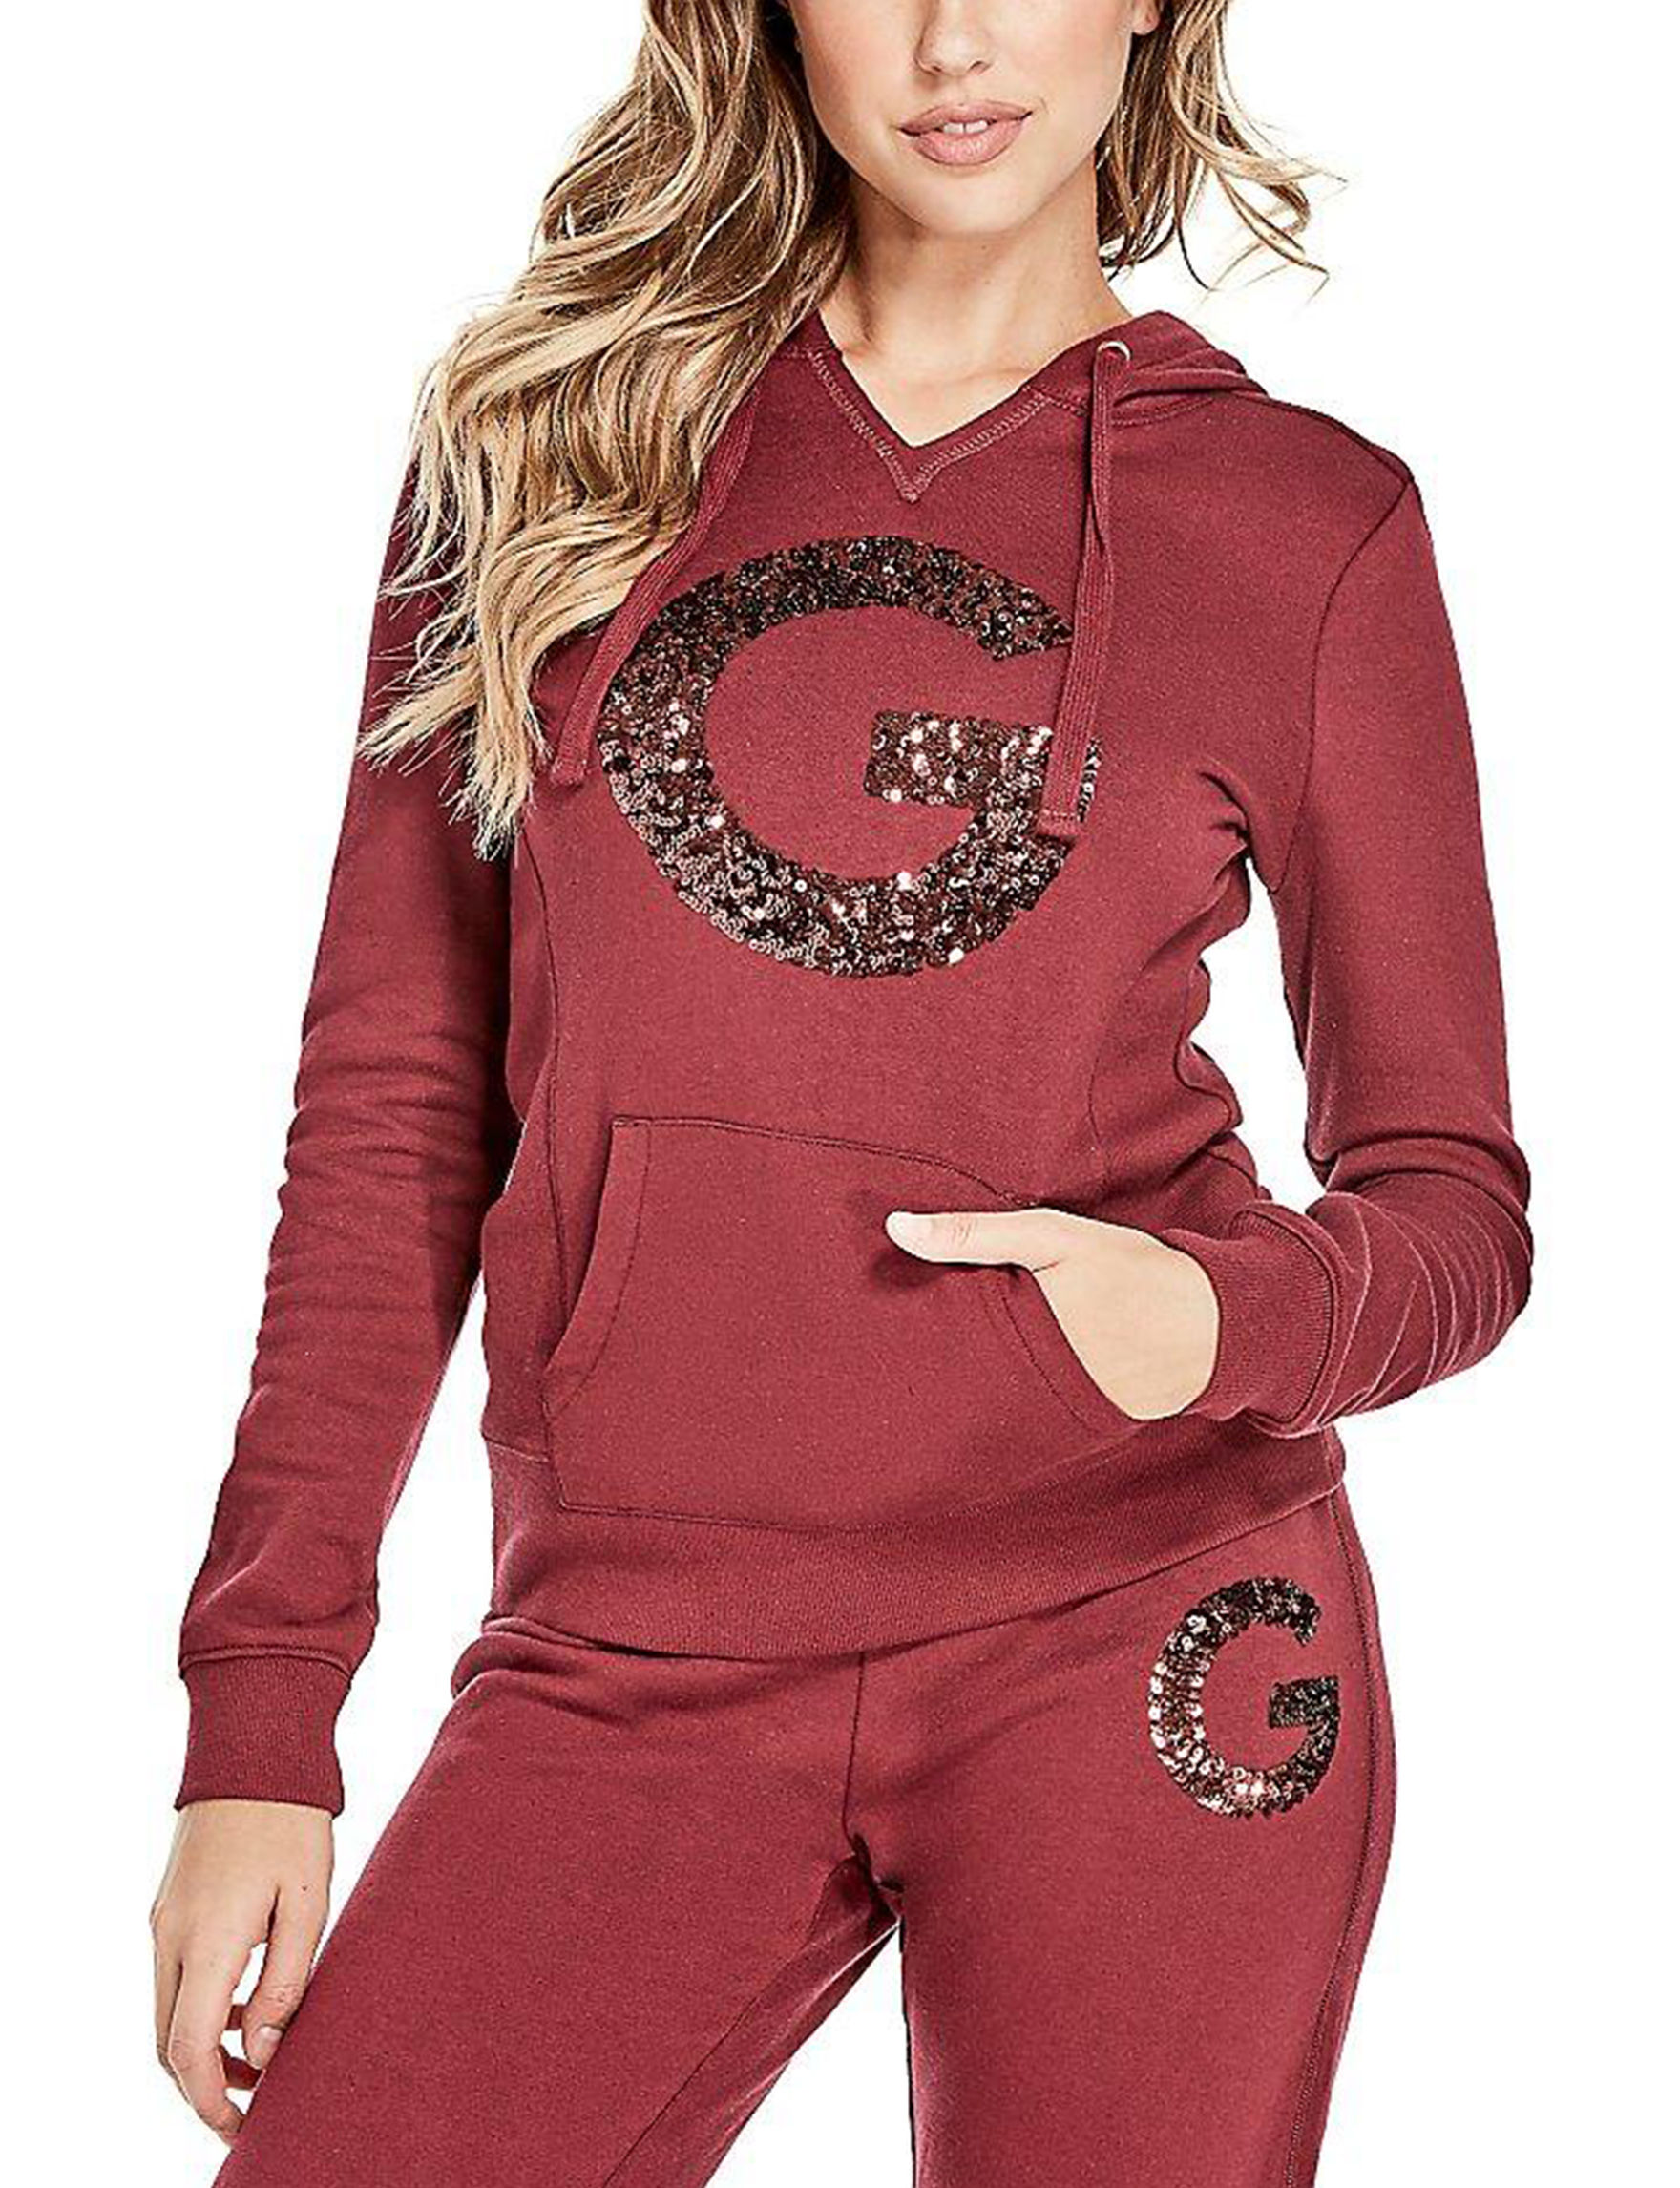 G by Guess Burgundy Pull-overs